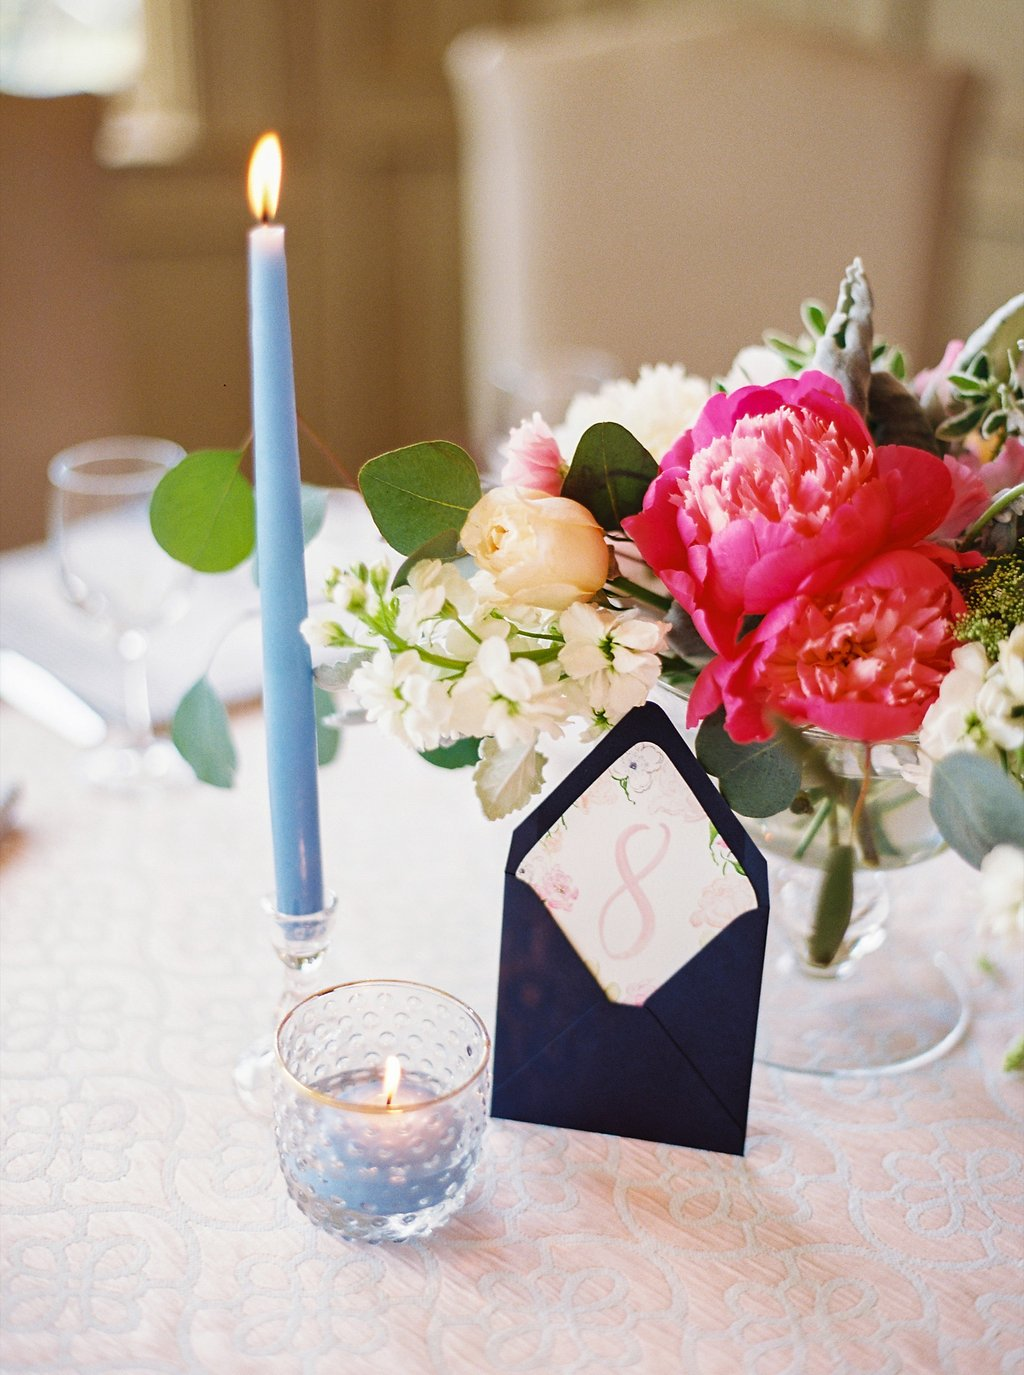 Southern Wedding Reception Design with Patterned Linens, Colorful Floral Centerpieces, Envelope Love Letter Calligraphy Table Numbers, and Sweet Blue Taper Candles | Blush and Navy Wedding with Fuchsia, French Blue and Gold Accents | Simply Jessica Marie's Southern Wedding at Gettysvue Golf Course and Country Club in Knoxville Tennessee | Photo by Perry Vaile Photography